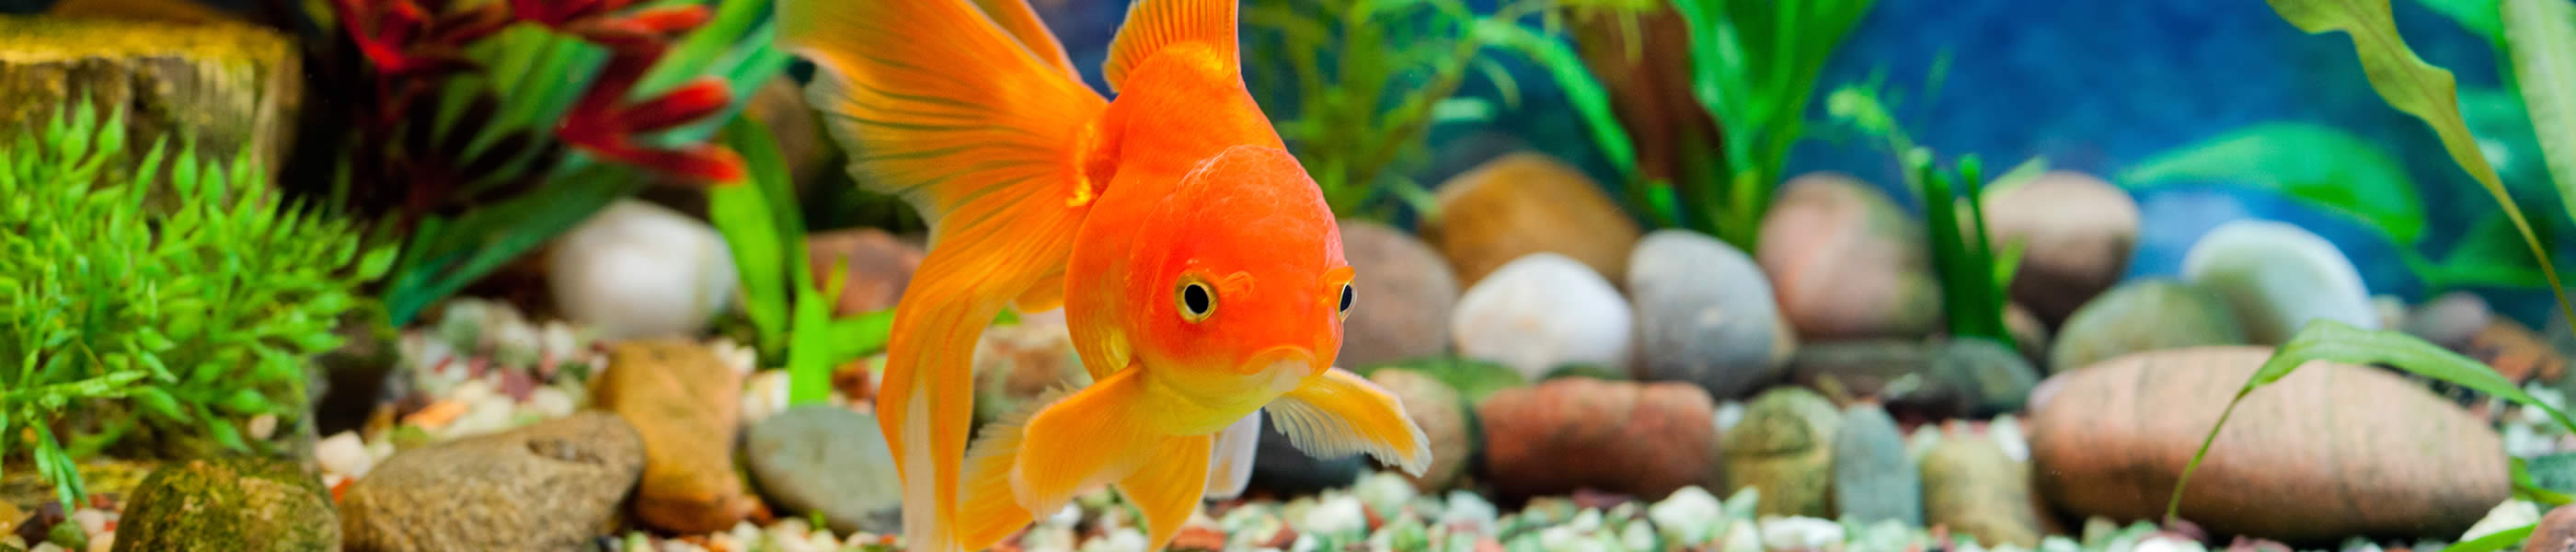 200 Most Popular Fish Names 100 Boy 100 Girl Petset Com